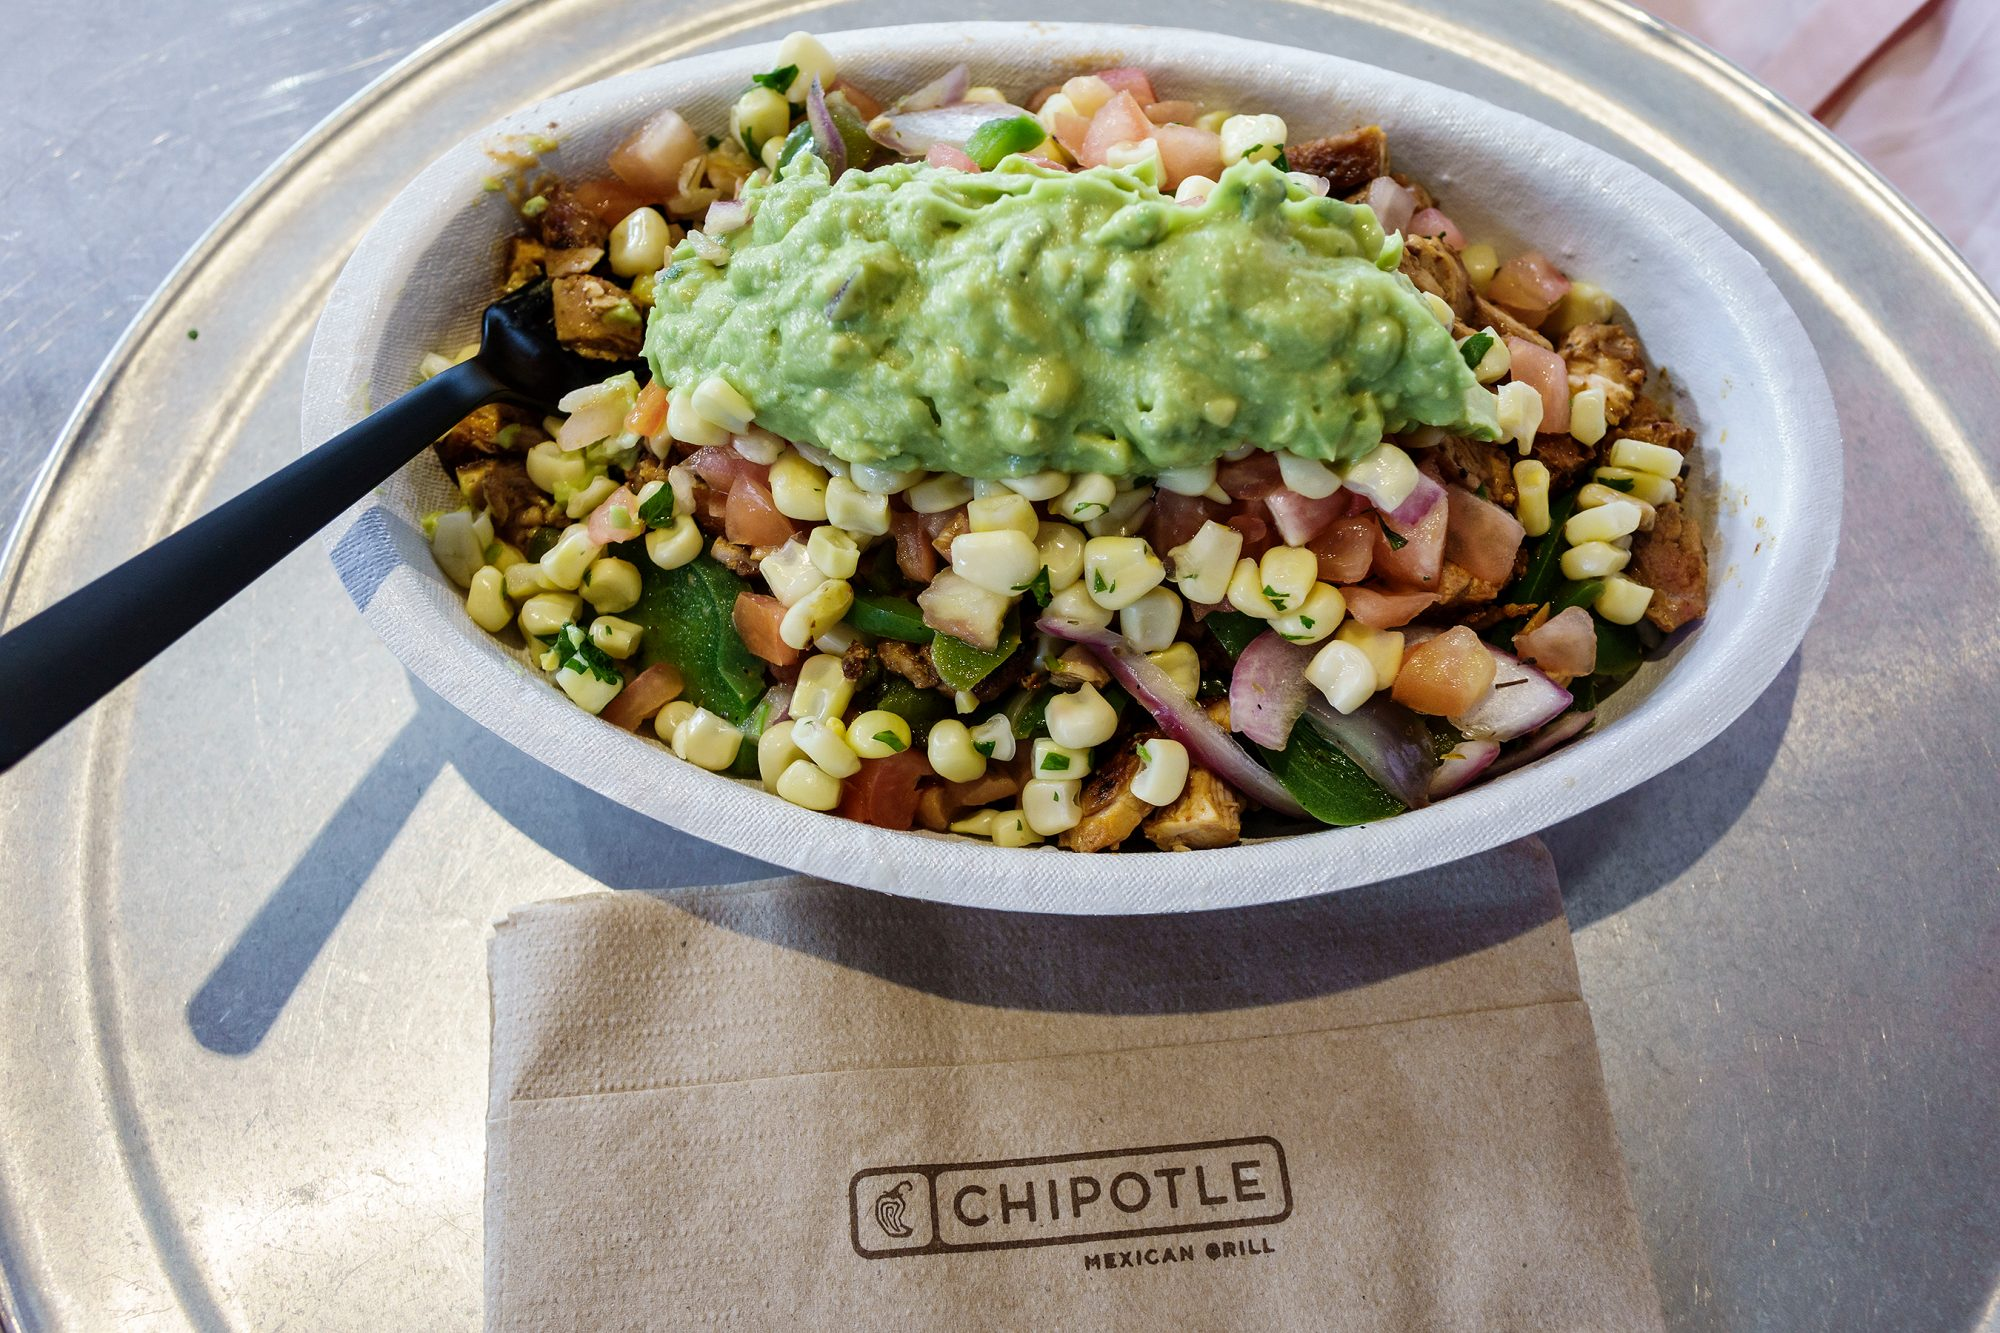 New Study Finds Chipotle and Sweetgreen Bowls Contain Cancer-Linked, Non-Biodegradable Chemicals